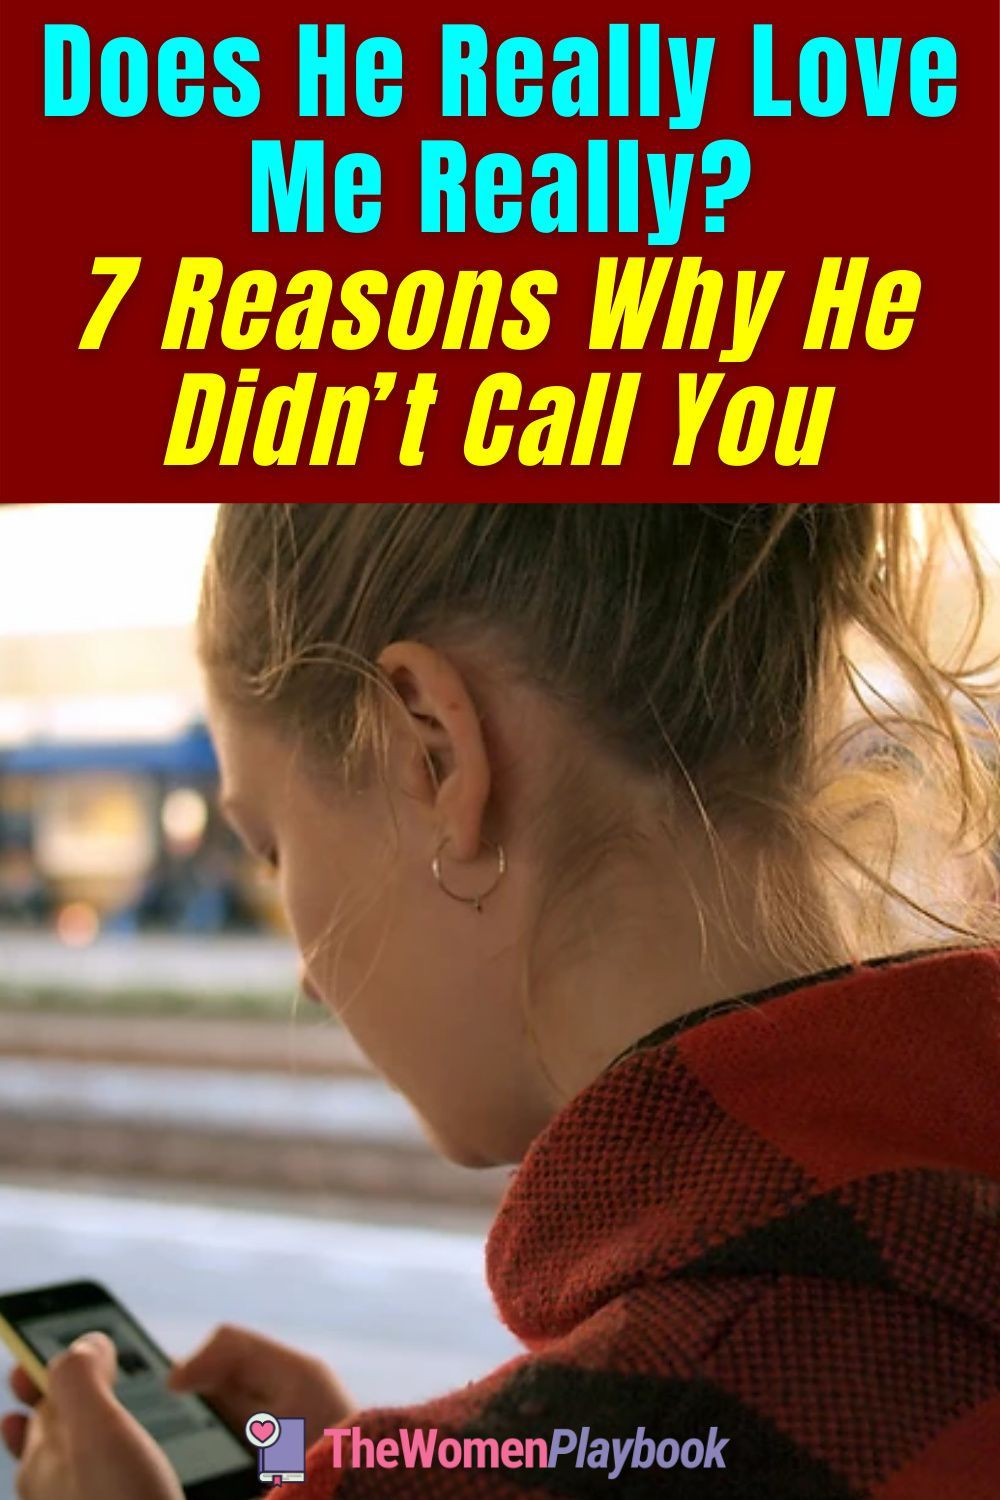 Does He Love Me Really? 7 Reasons Why He Is Not Calling in